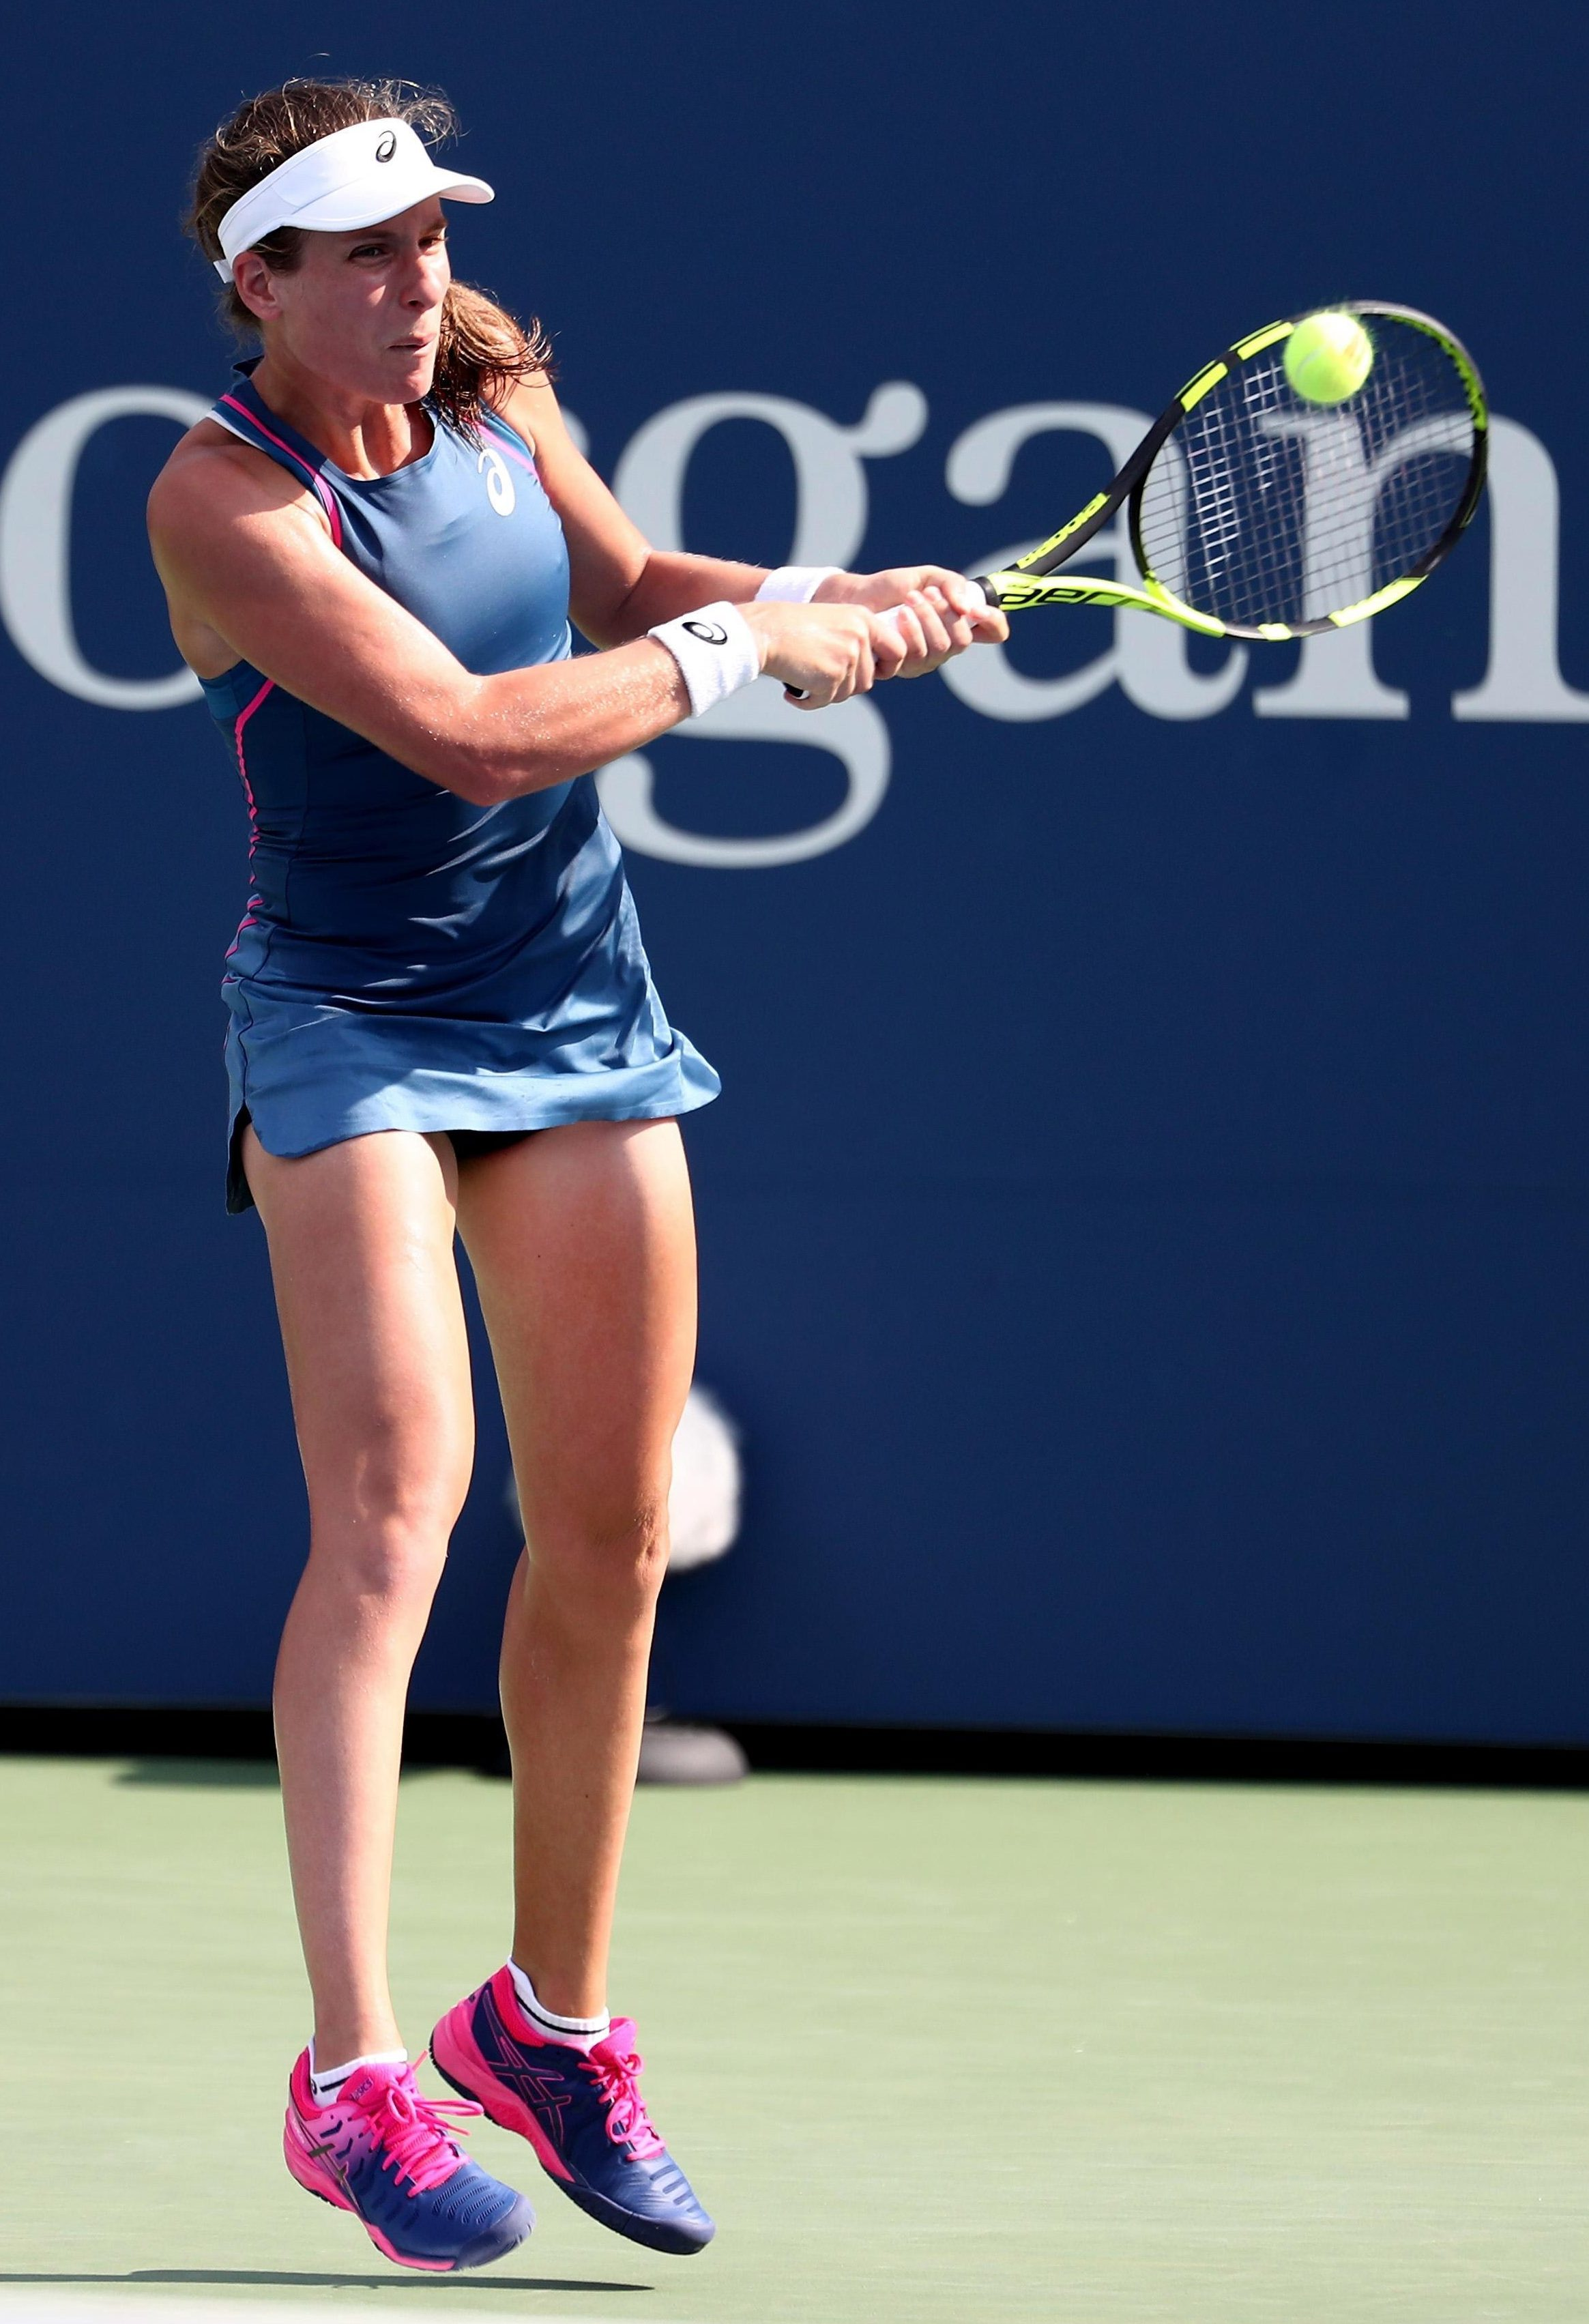 Jo Konta lost in the first round in New York for the second year in a row